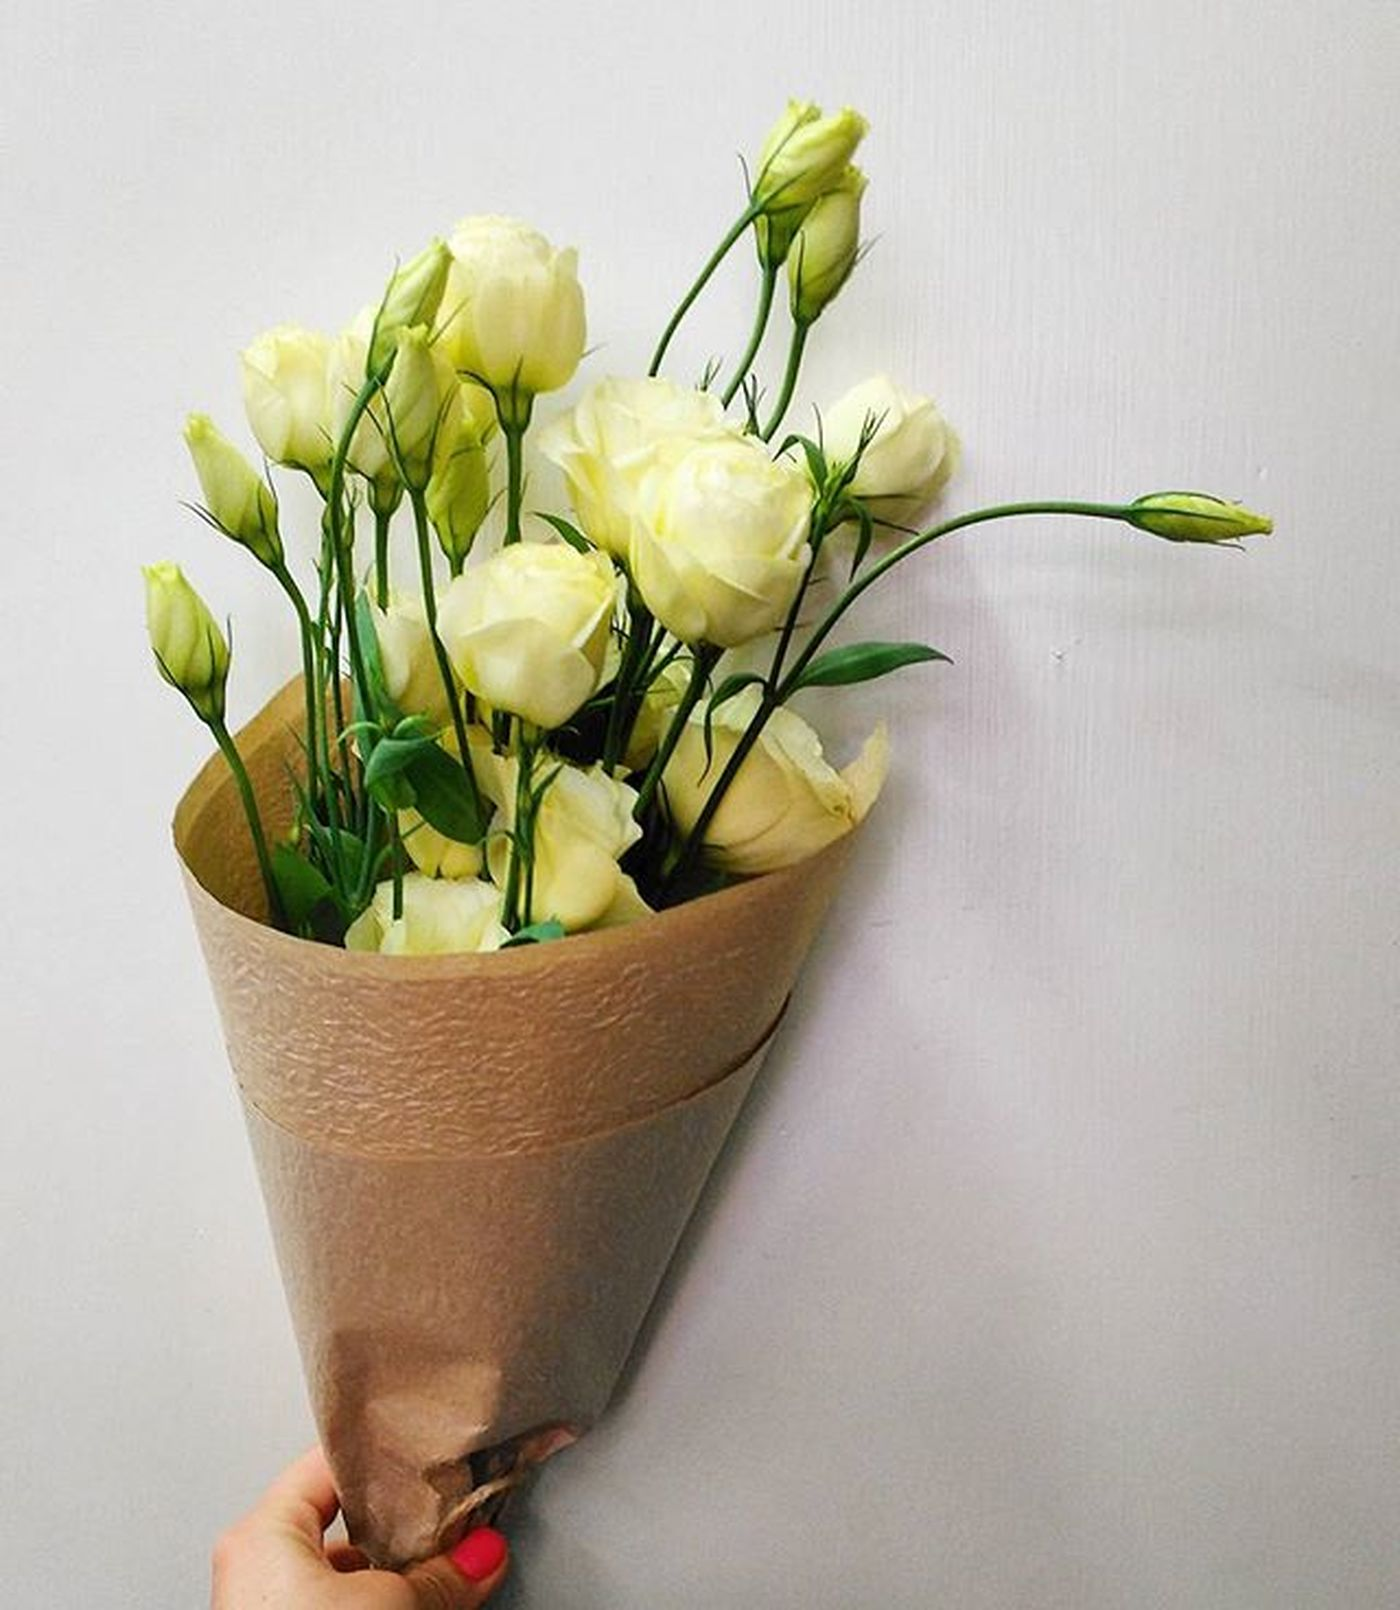 A pretty little bunch for a pretty lady on a Friday! @morganblades Happy Friday All! Adelaide Lisanthus Prettylittlebunch Littlebunch Cream Flowers Friday Fridayfaffing Itsalmost5 Floralfridaycompetition Brownpaperpackagestiedupwithstring